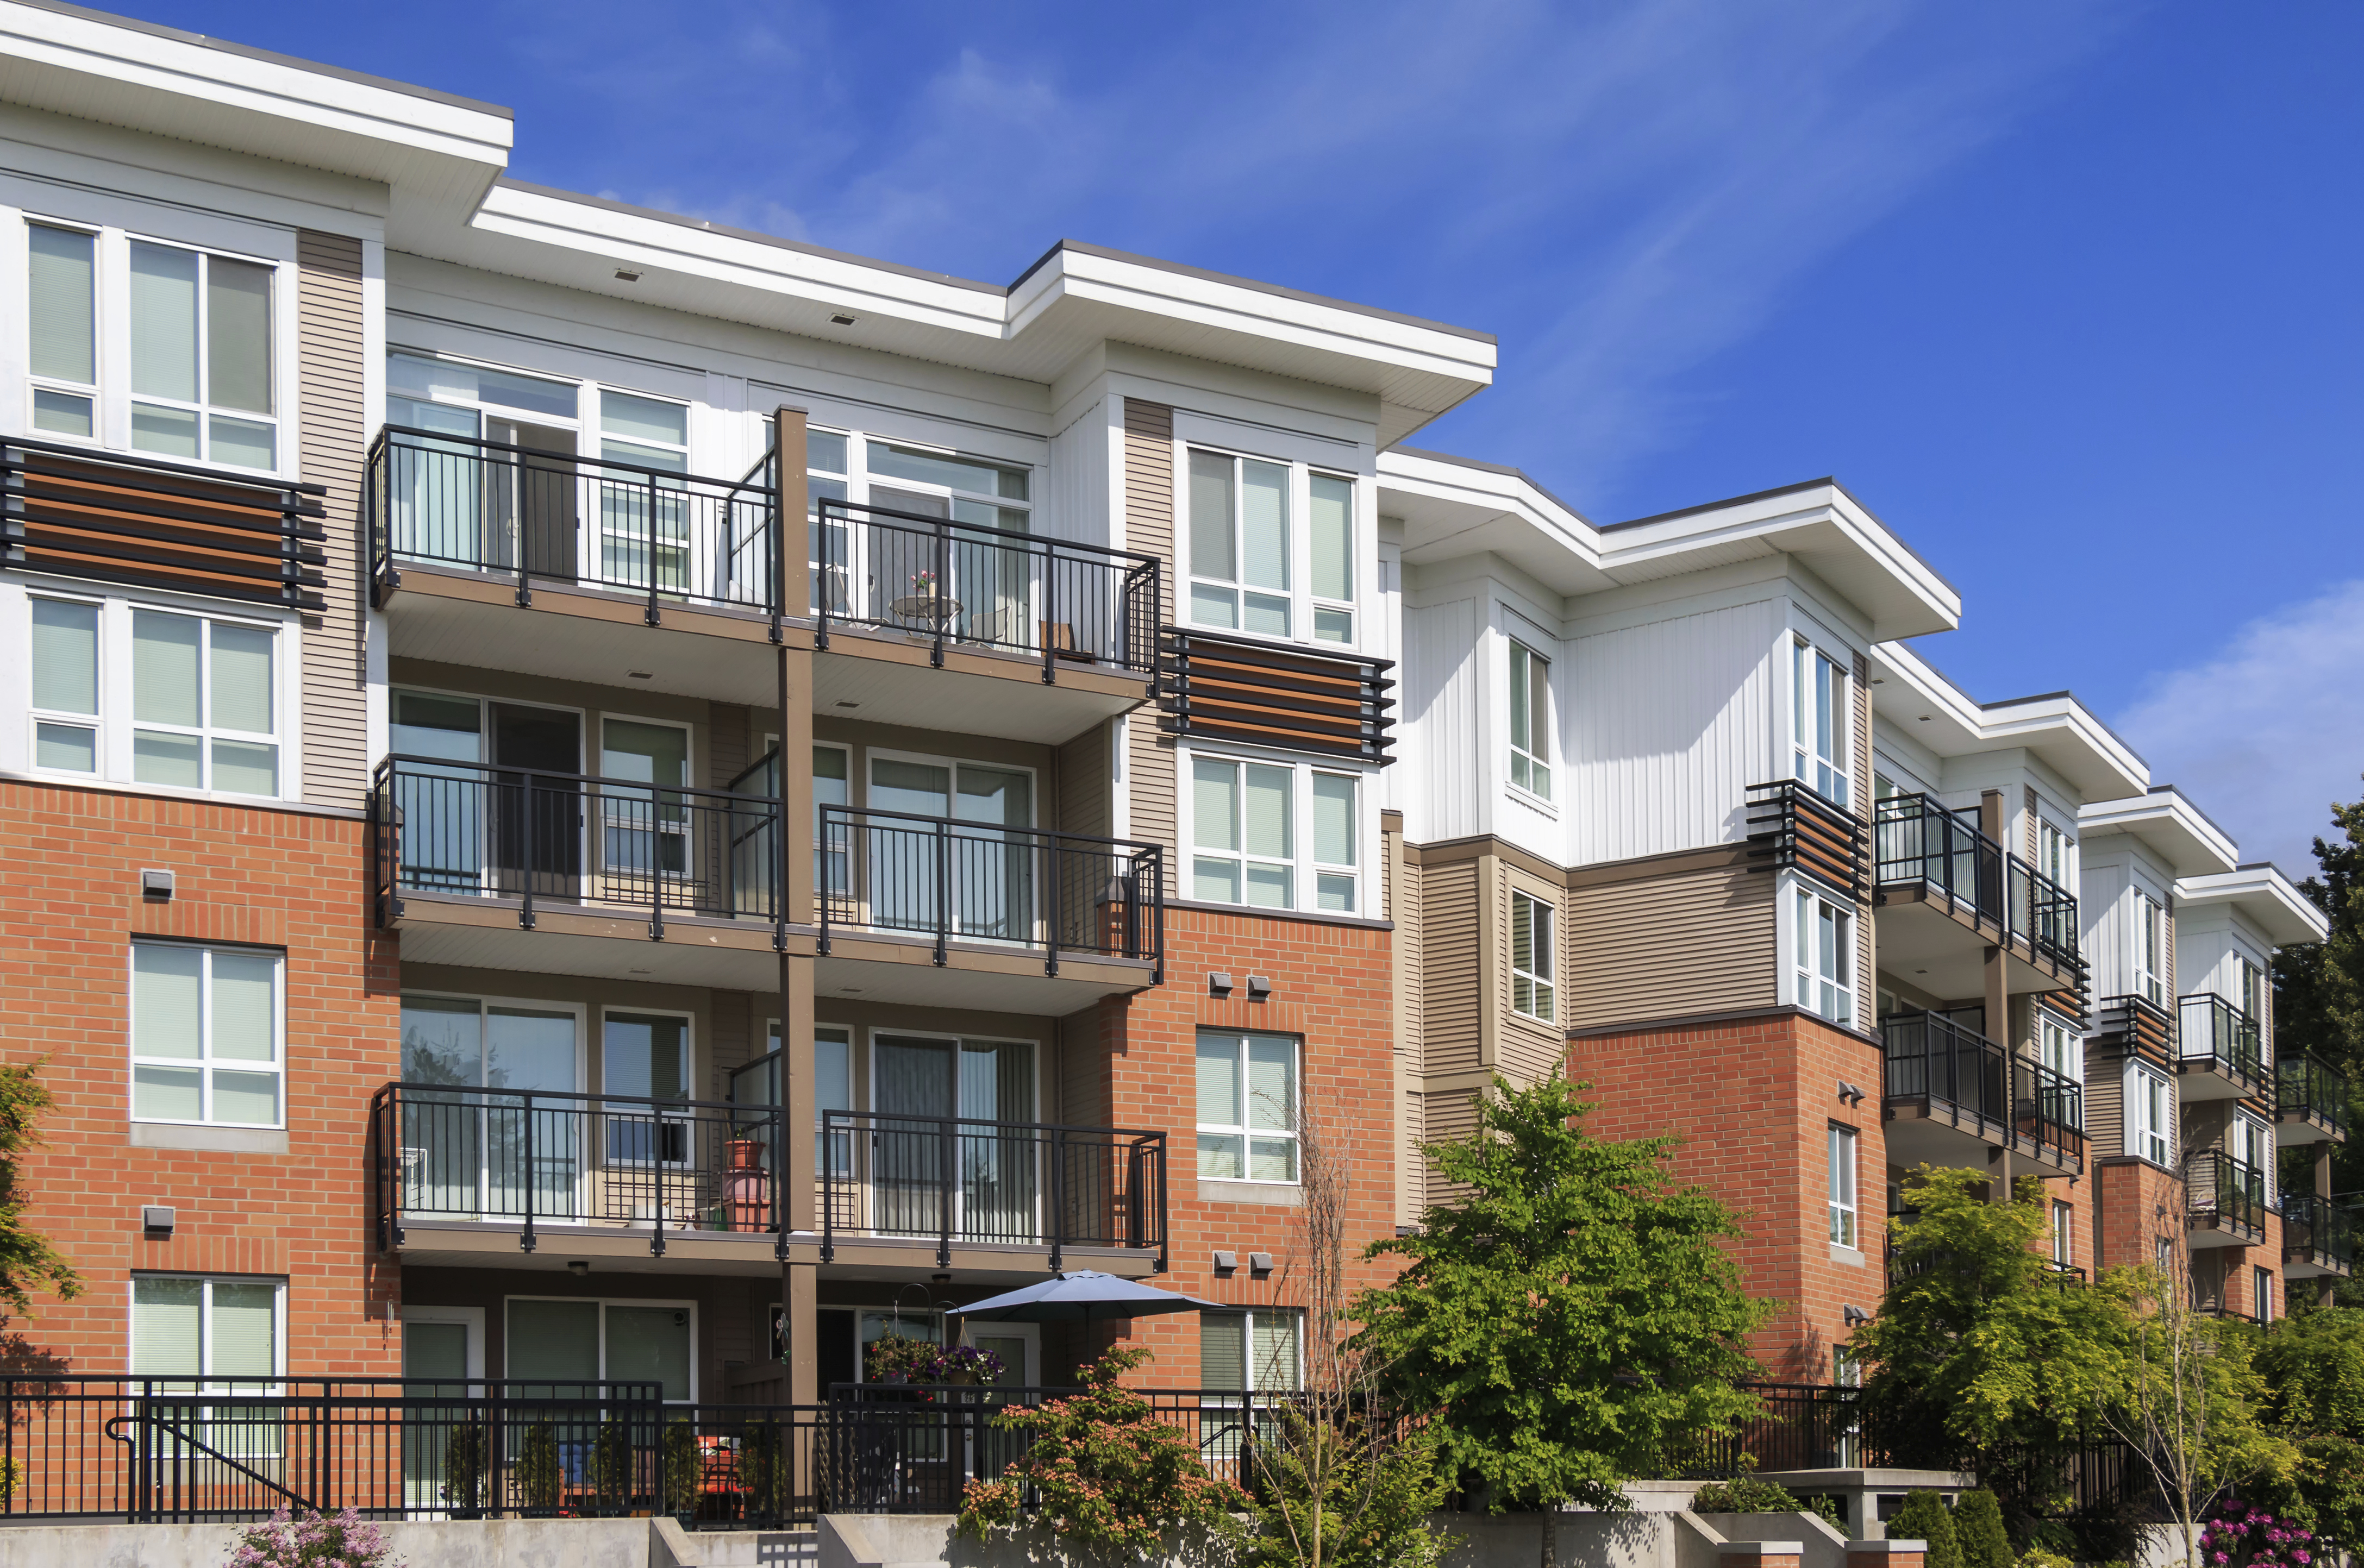 The 10 Best Markets for Multifamily Investment | National Real